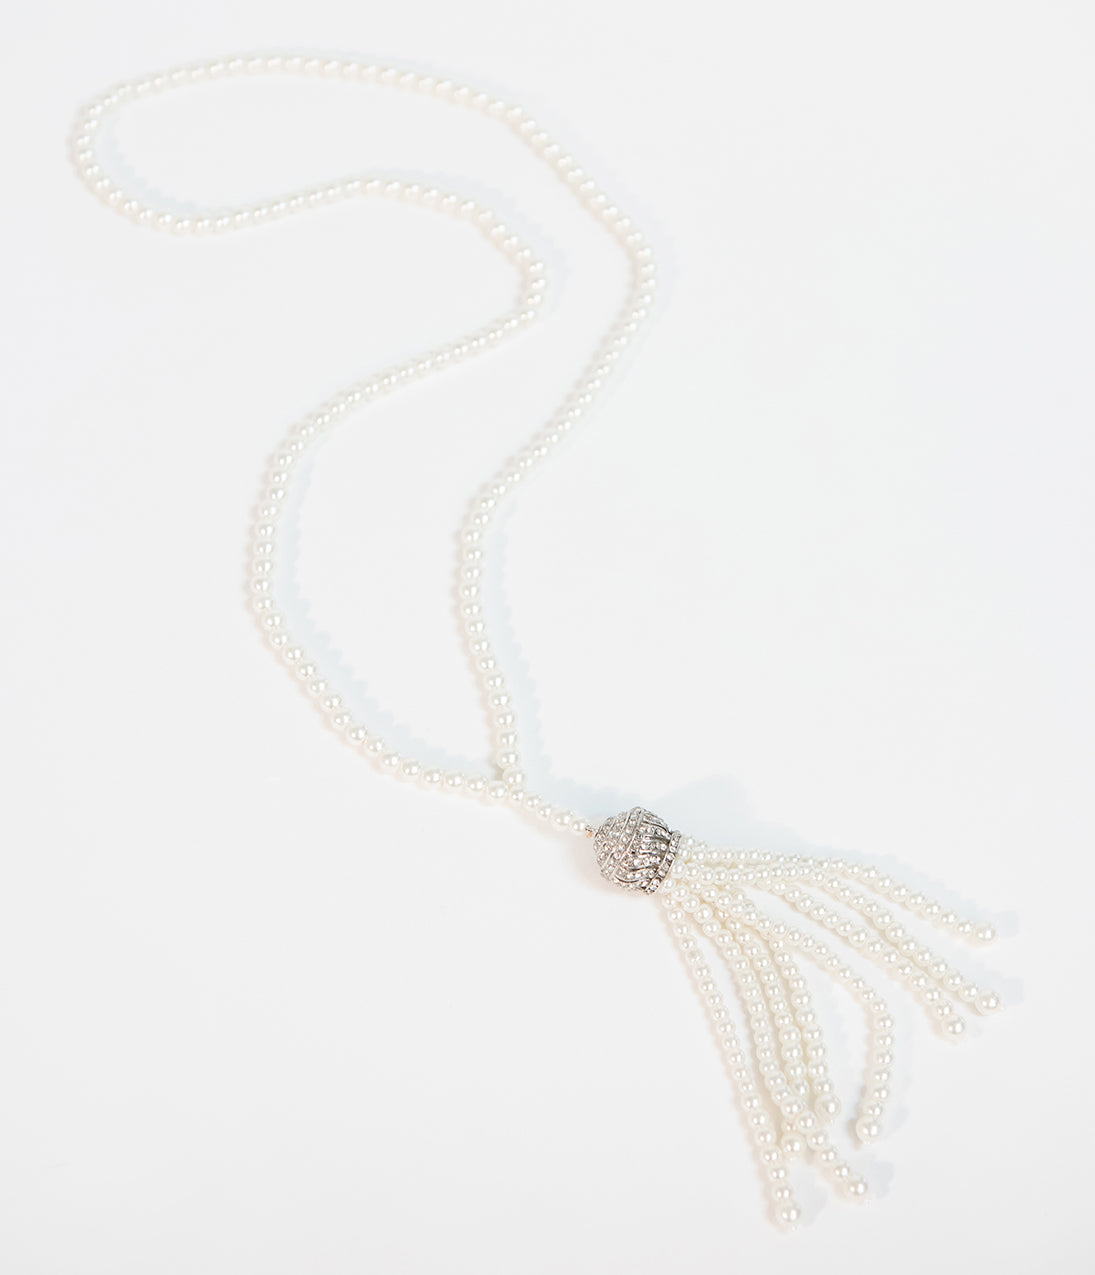 Vintage Style Jewelry, Retro Jewelry Unique Vintage Deco Style Ivory Pearl  Silver Tassel Necklace $24.00 AT vintagedancer.com